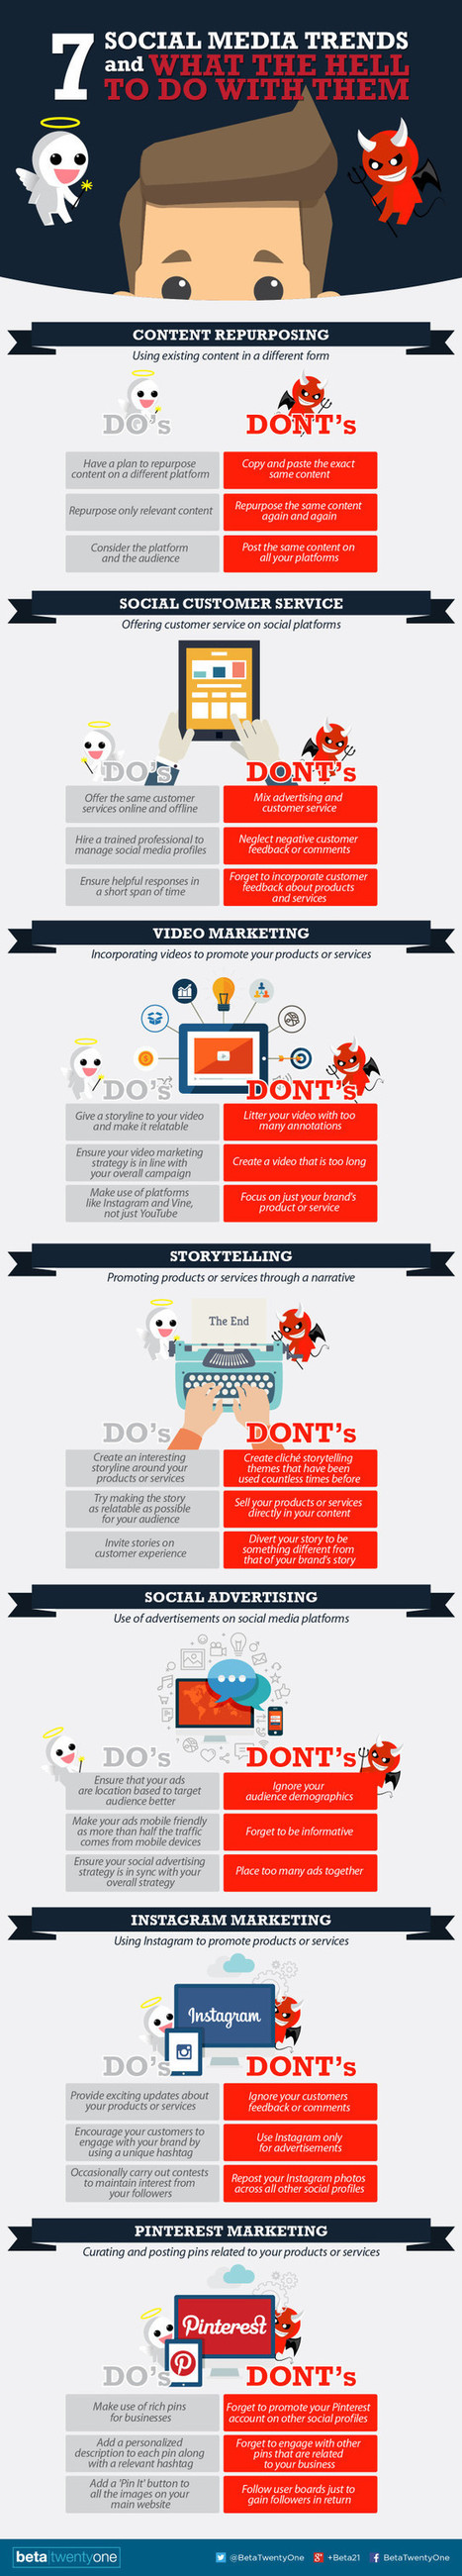 Social Media Trends and Their Do's and Don'ts #infographic | Café puntocom Leche | Scoop.it